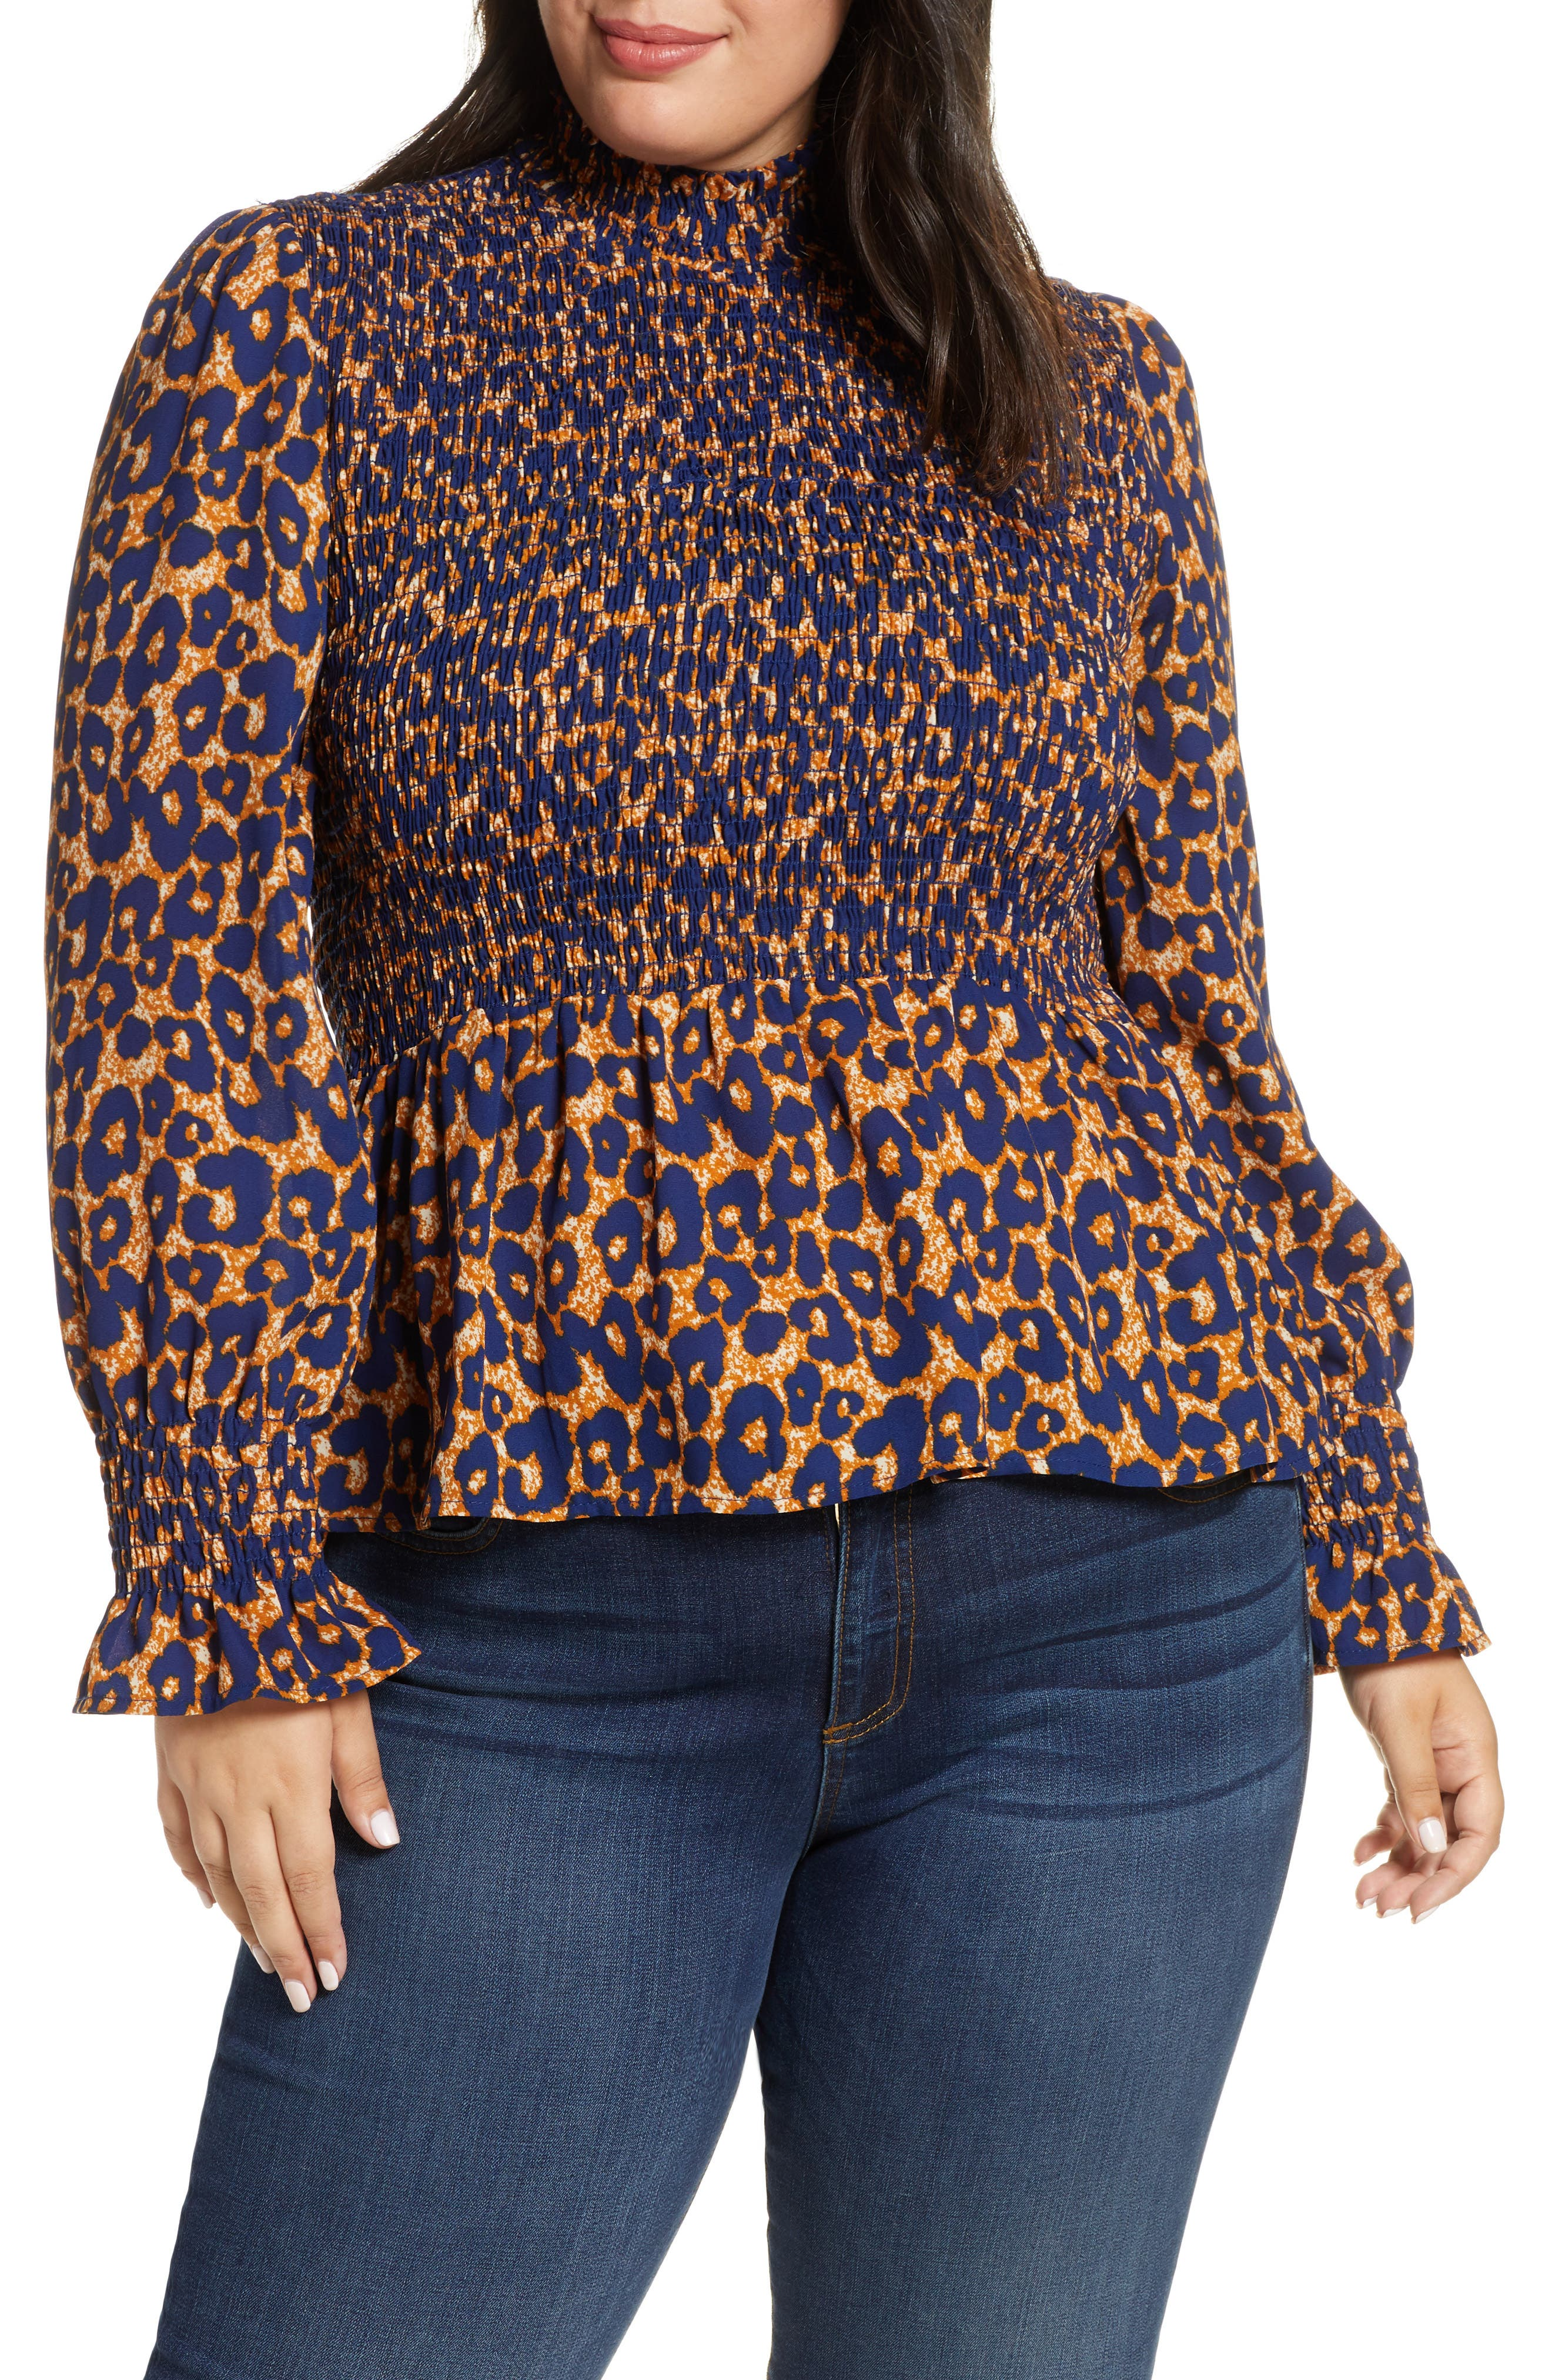 Smocked Peplum Top by Gibson